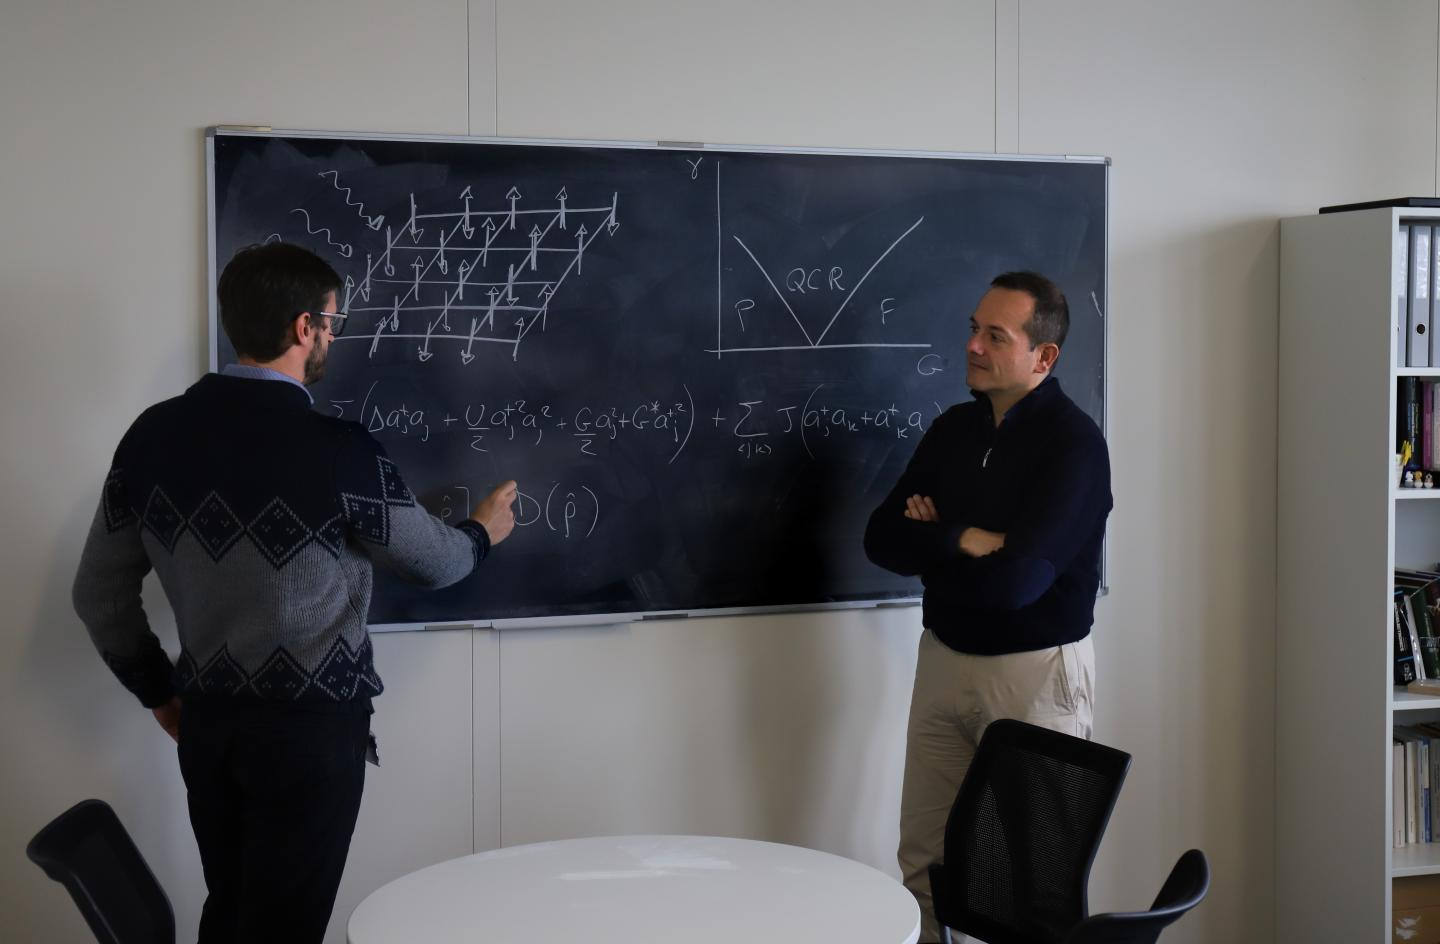 Riccardo Rota and Vincenzo Savona, the two EPFL physicists leading the study, working on the design of their quantum simulator. Courtesy of R. Ravasio/EPFL.